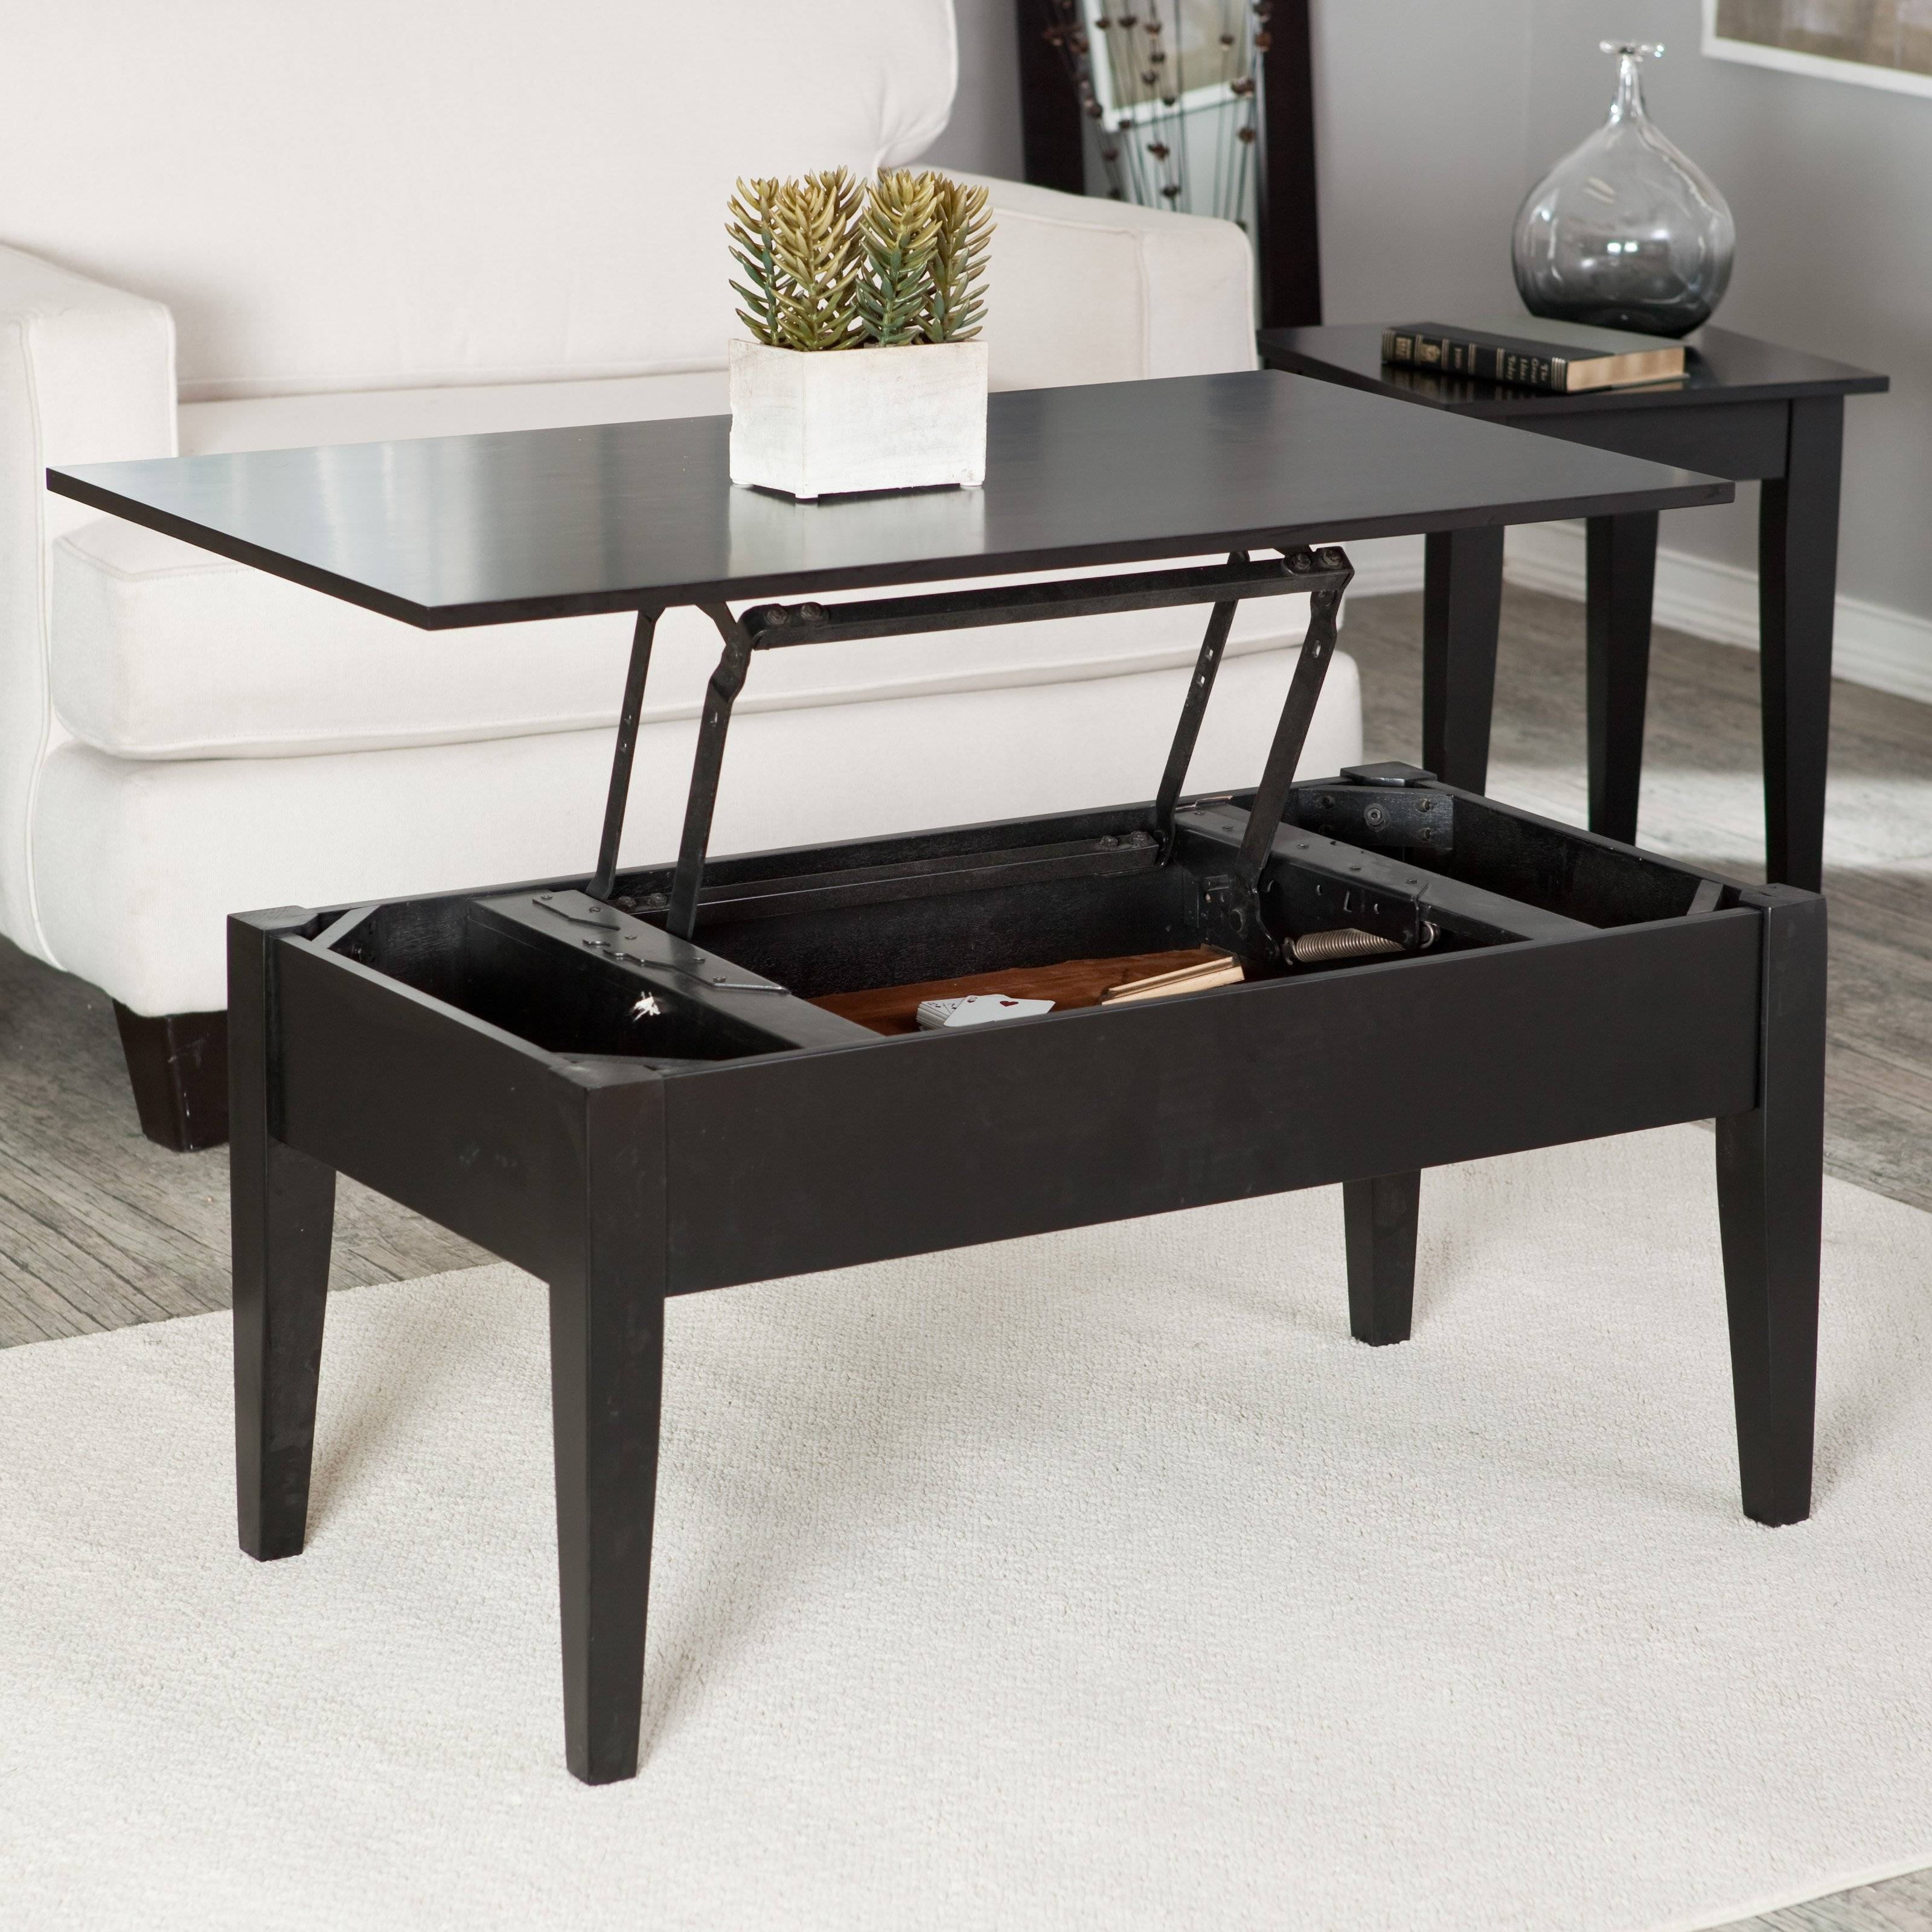 Lift Top Coffee Table With Unique Design | Home Design Studio in Raisable Coffee Tables (Image 24 of 30)